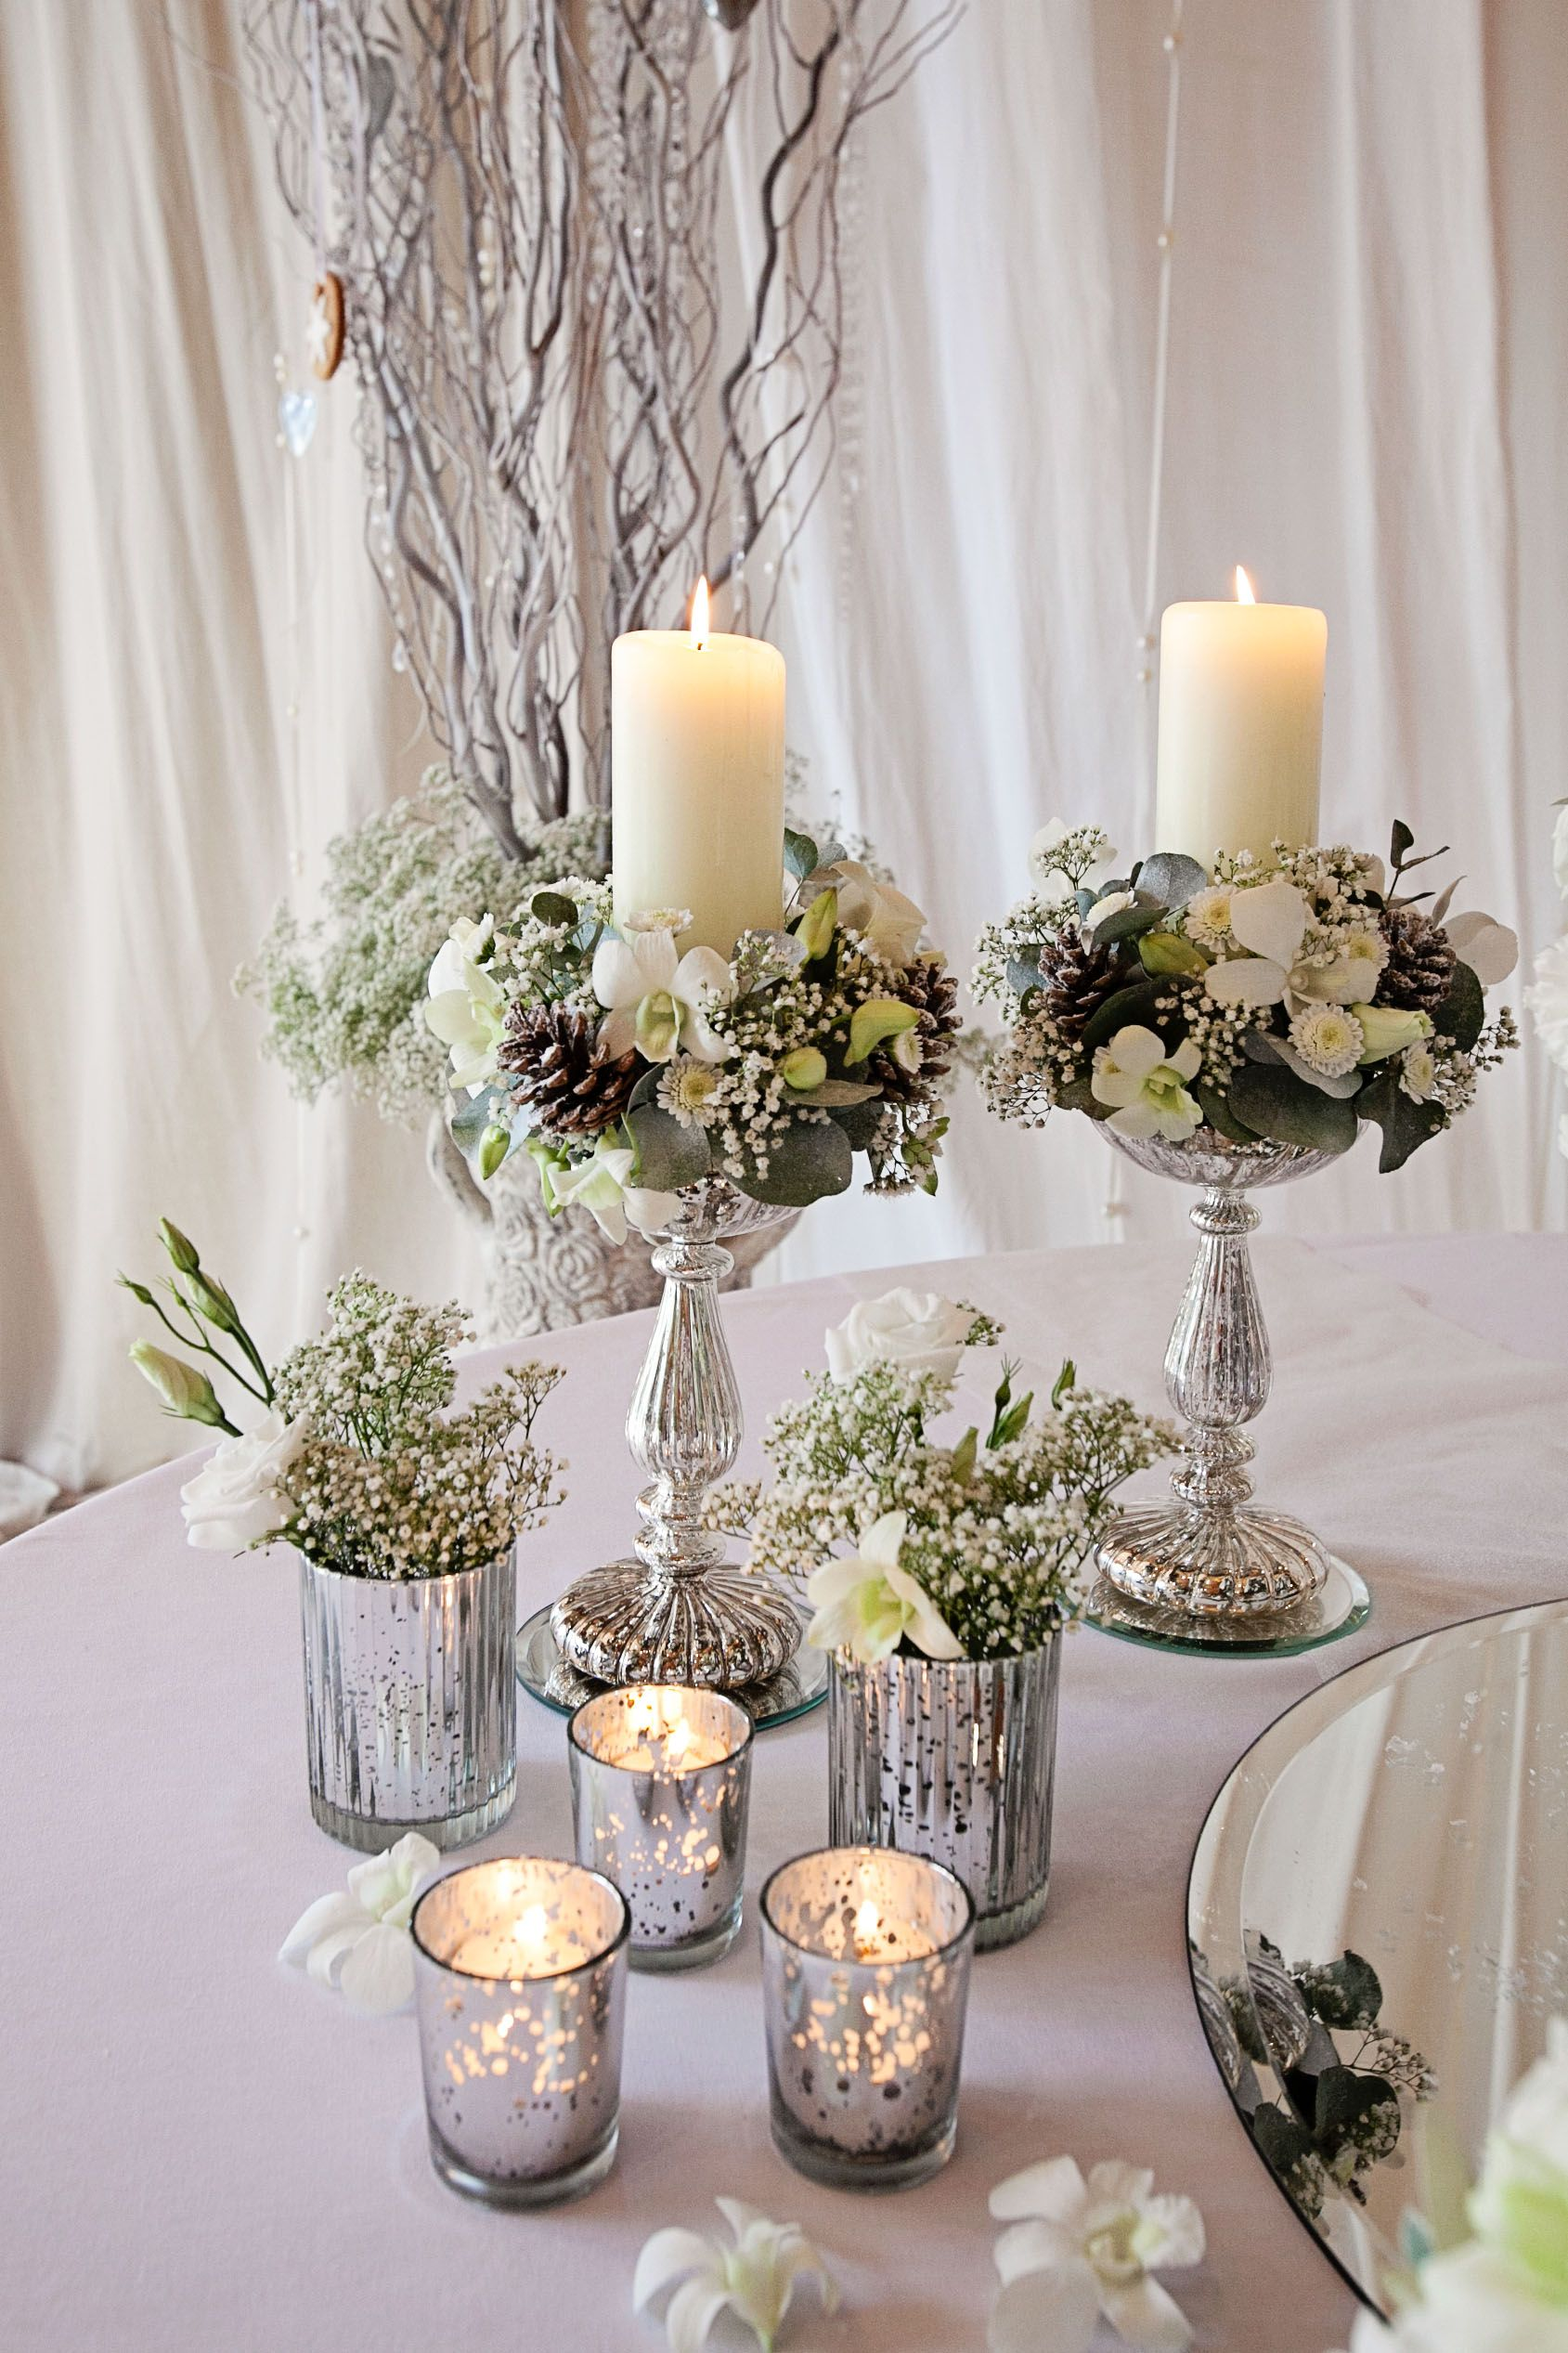 Tiara flower arrangements candle stand arrangements and for Table arrangements